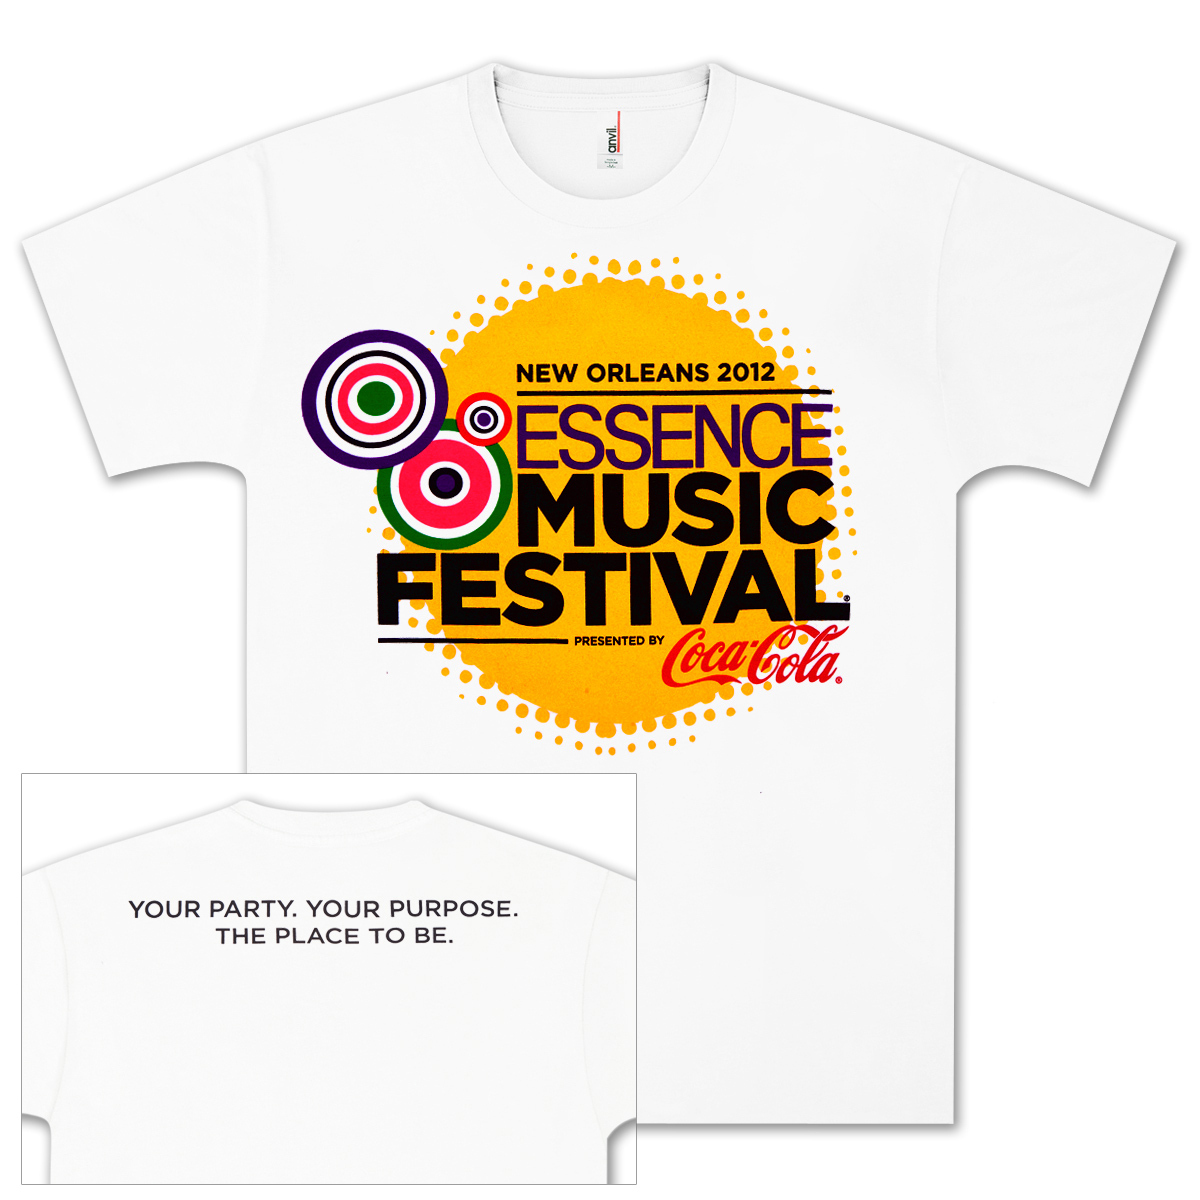 2012 Essence Music Festival T-shirt